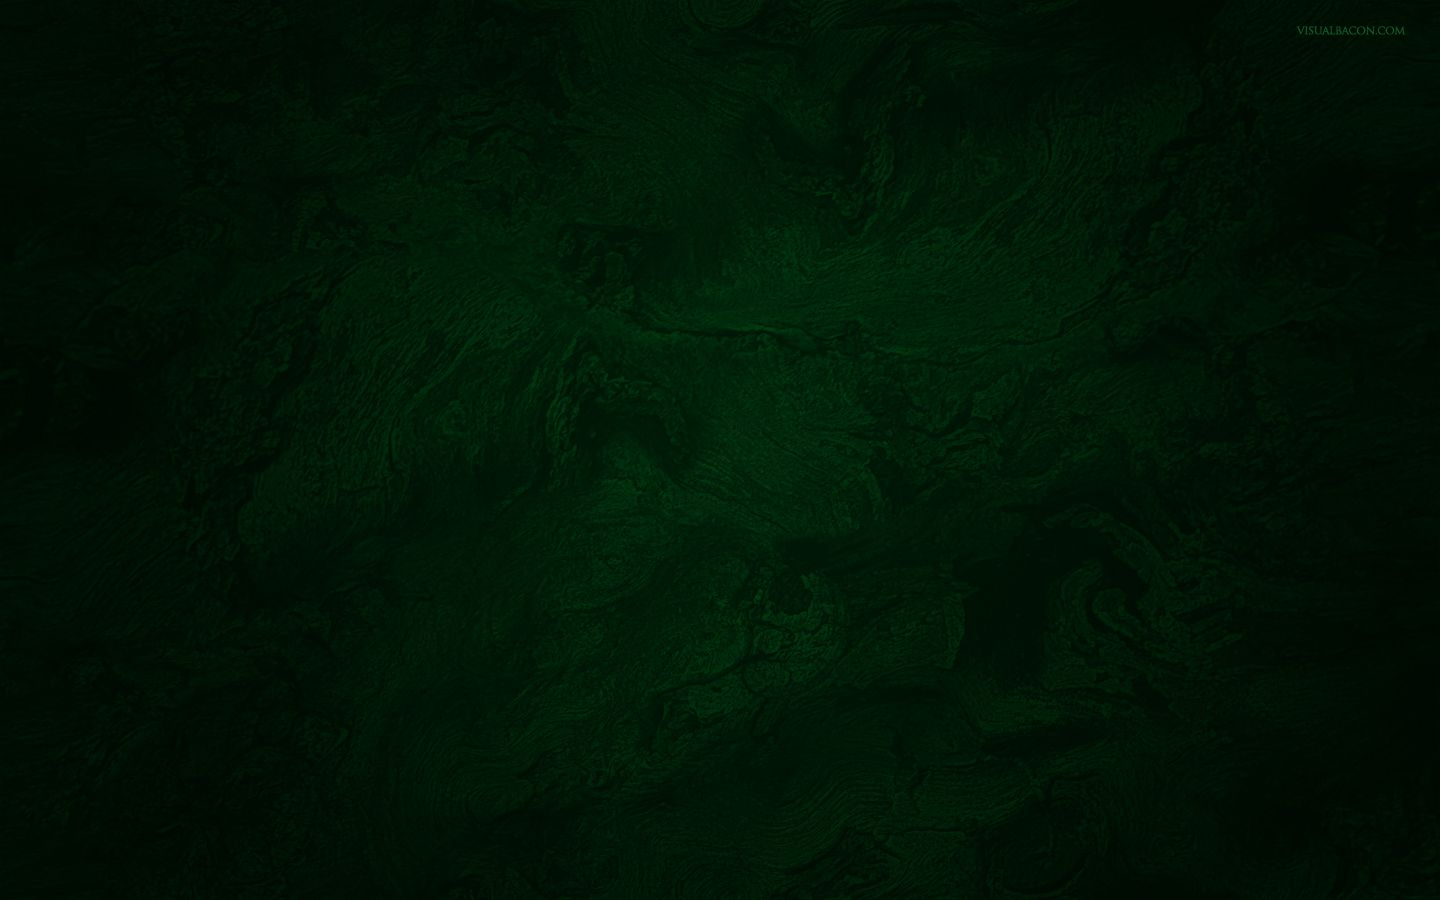 dark green wallpaper hd wallpapersafari best games